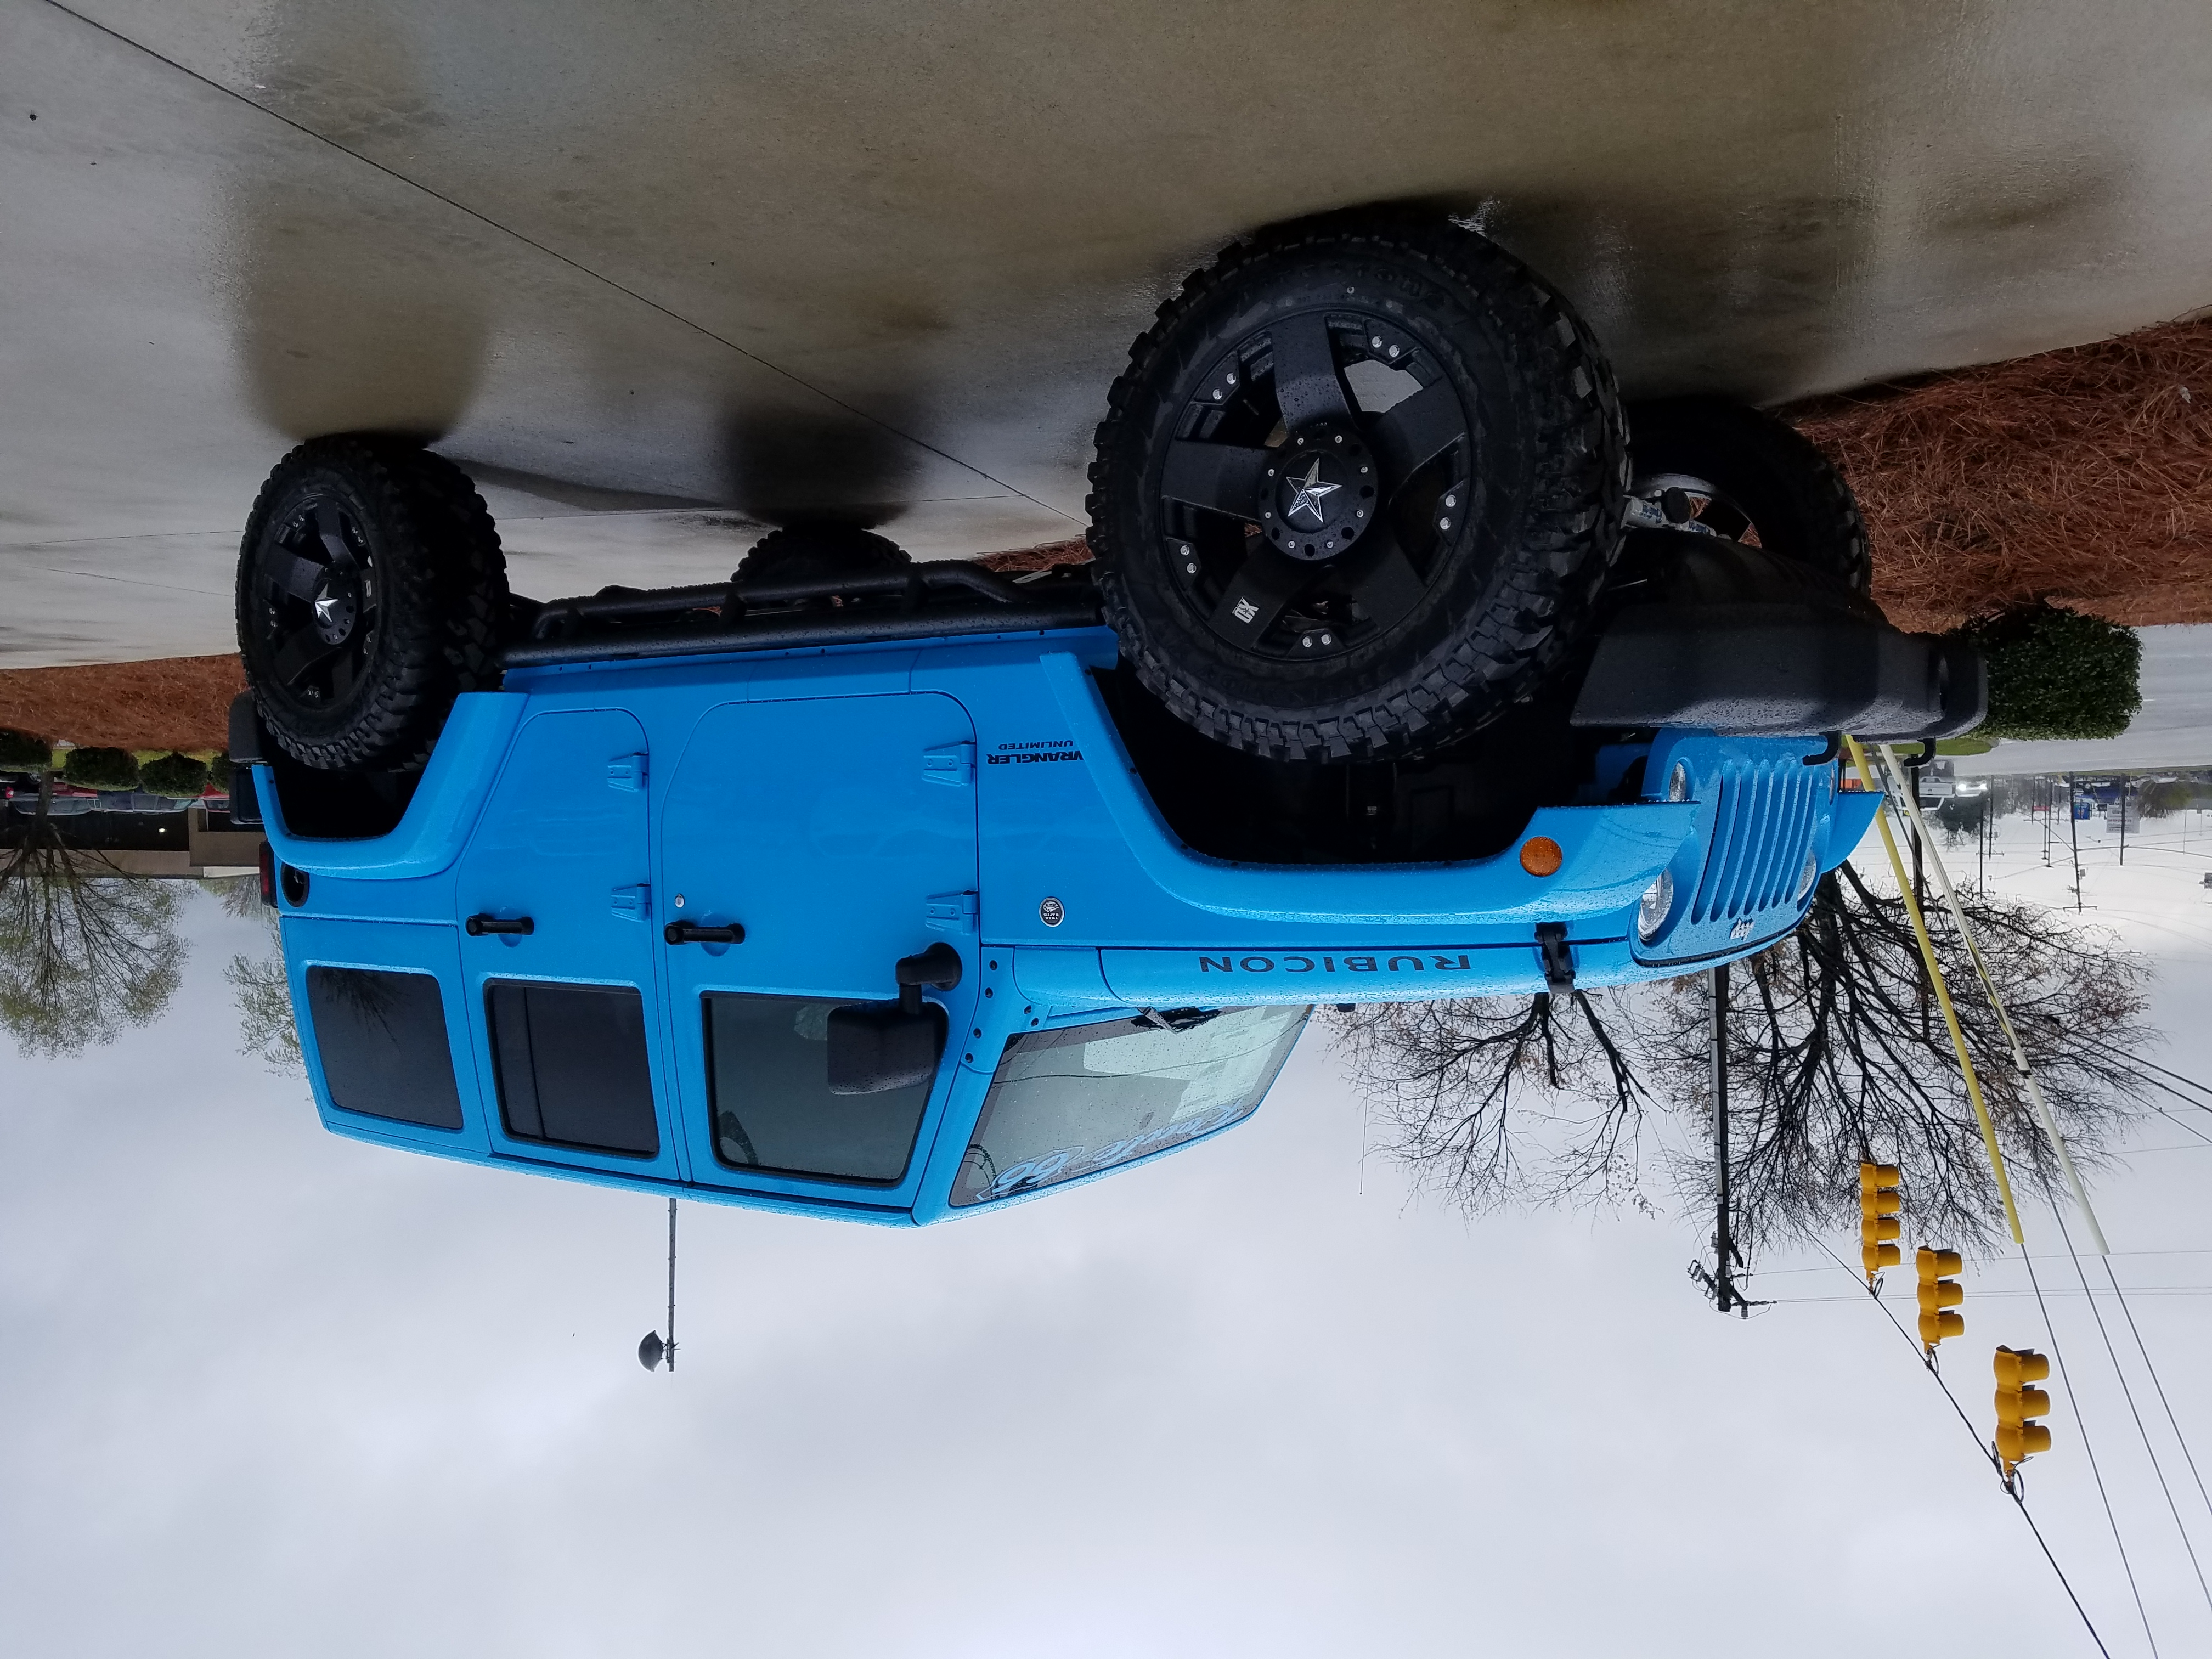 Route 66 Lifted Jeep JK Rubicon Blue